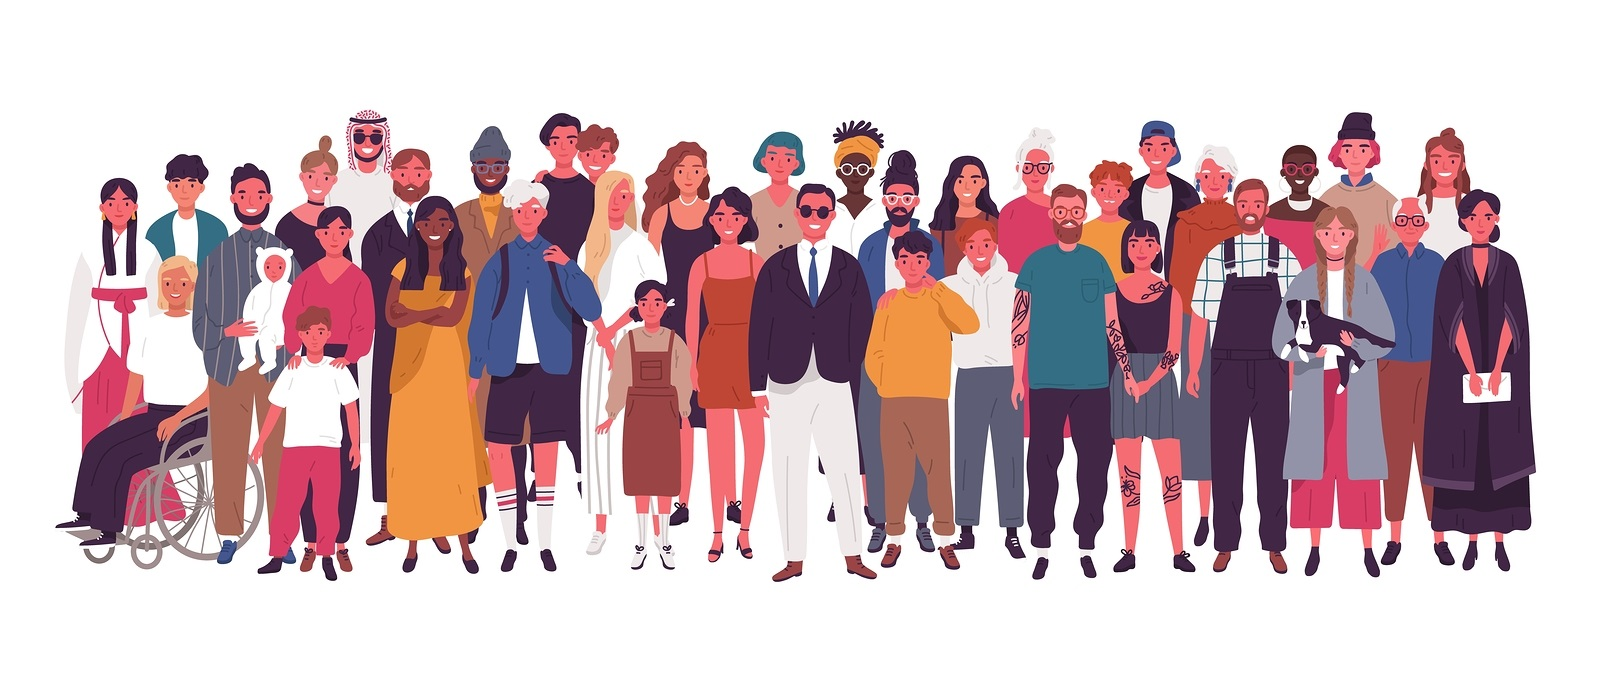 Diversity Is Not Just About Gender and Race - TLNT